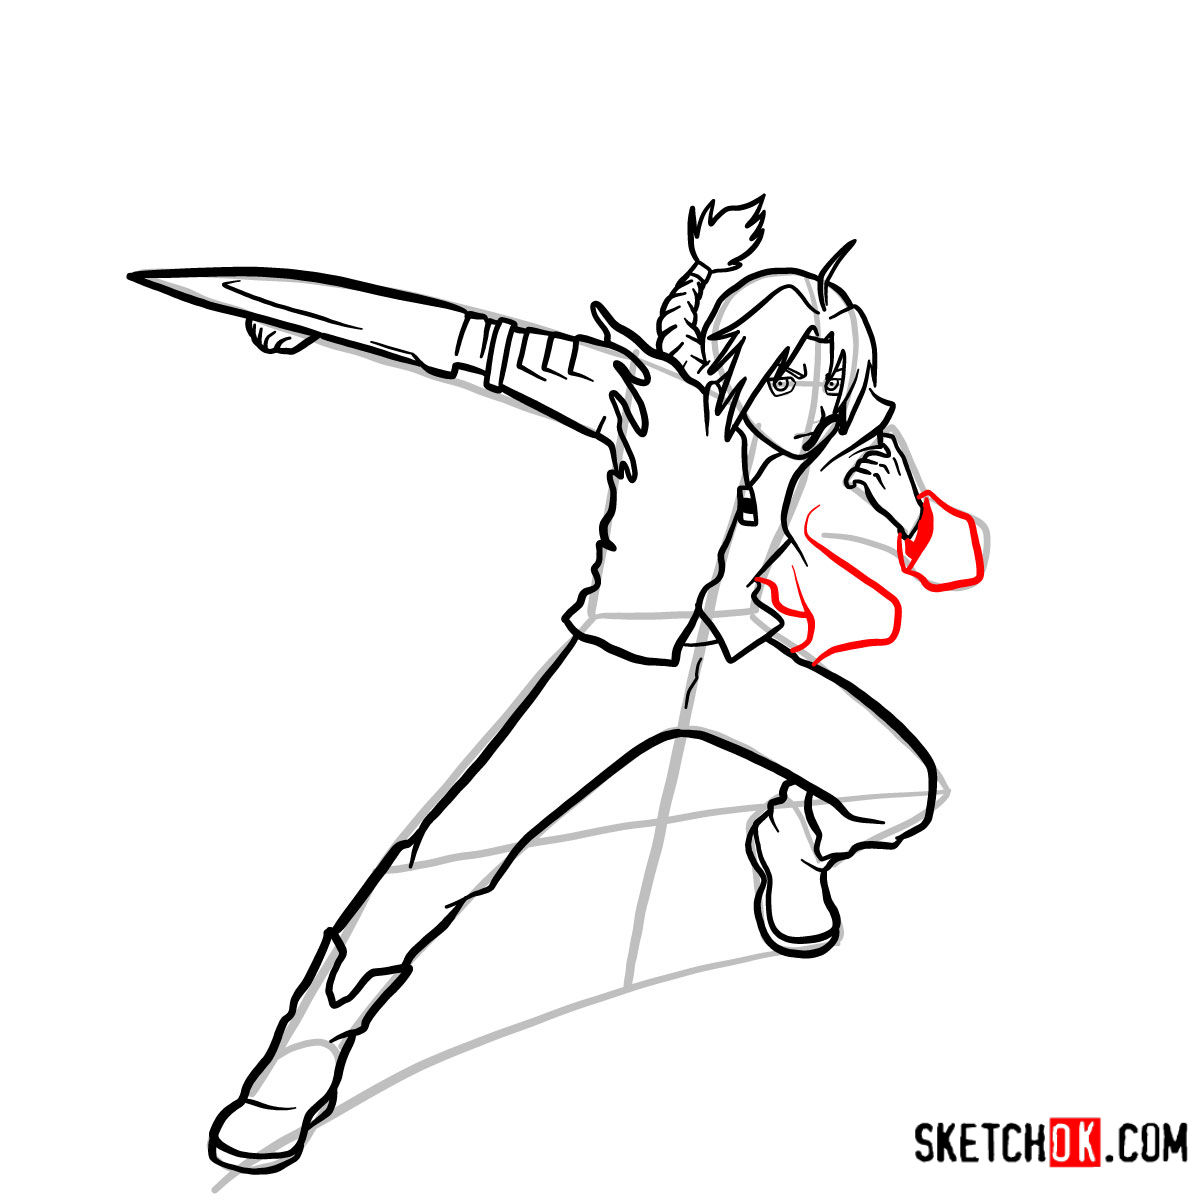 How to draw Edward Elric in a fight | Fullmetal Alchemist - step 12